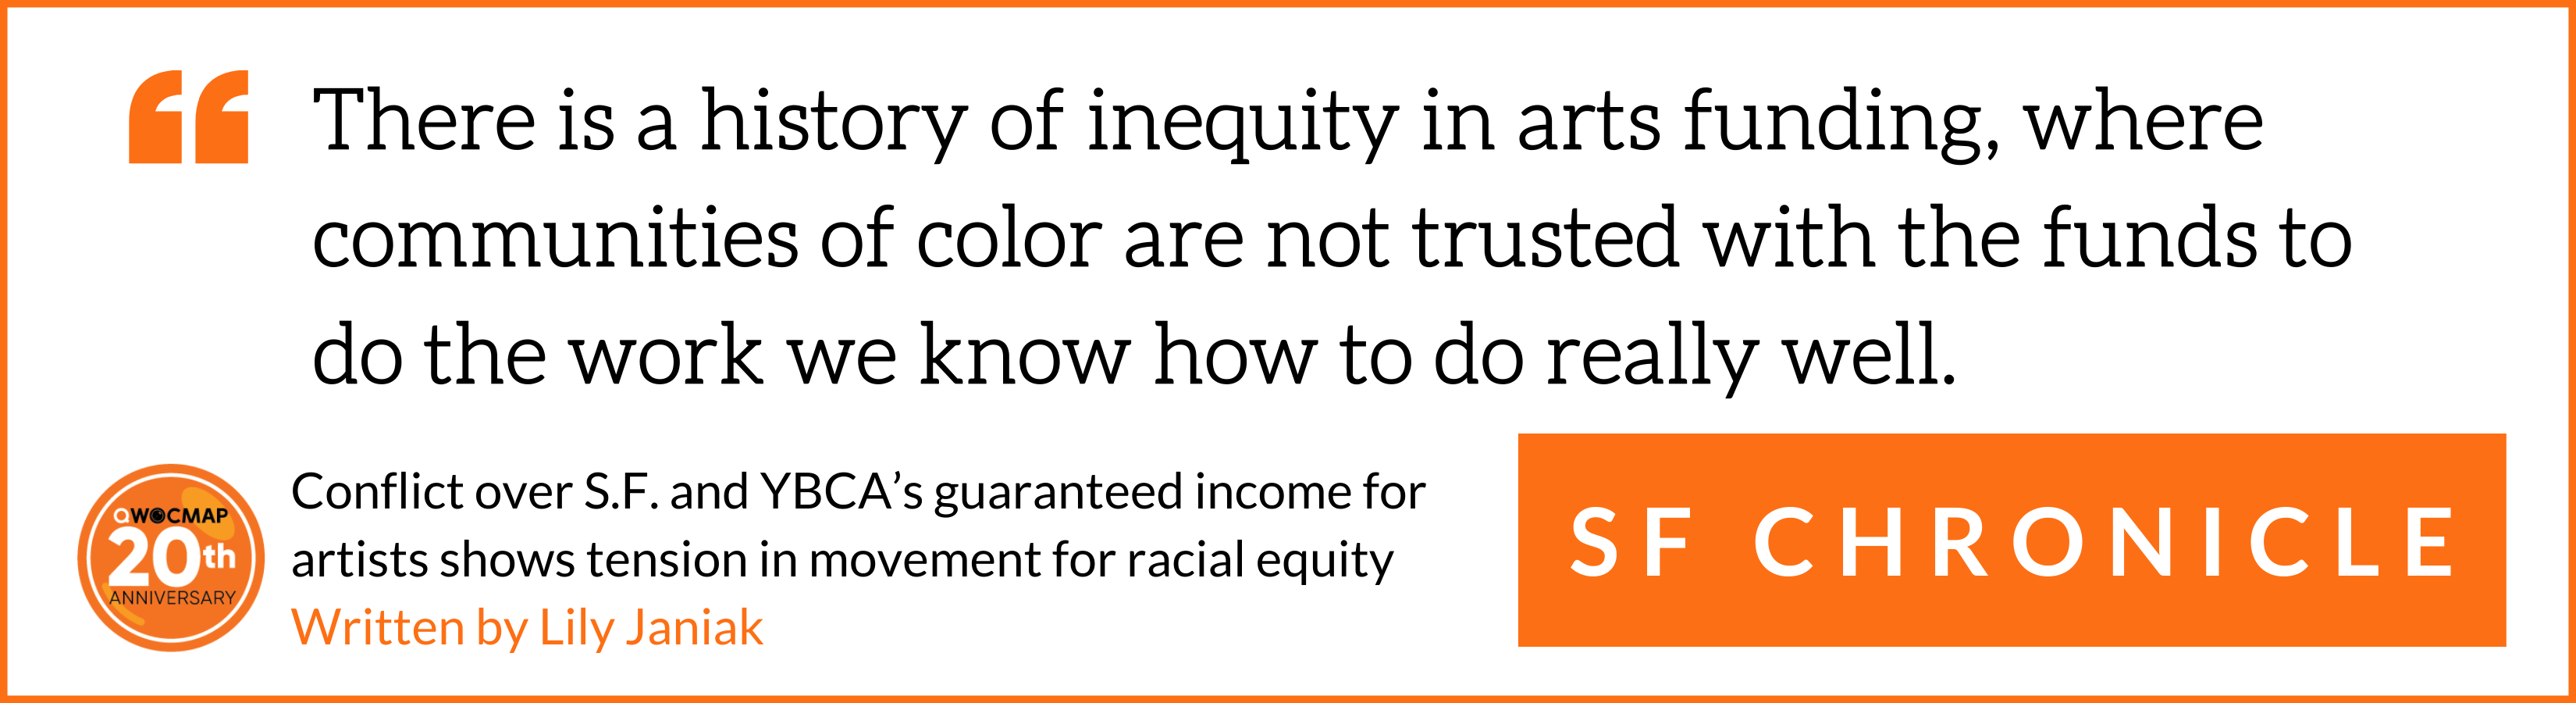 """On a white background surrounded by a thin orange border, black text in orange quotation marks reads, """"There is a history of inequity in arts funding, where communities of color are not trusted with the funds to do the work we know how to do really well."""" Below, white text in an orange box reads SF Chronicle. In the bottom left corner is the QWOCMAP 20th anniversary logo, and black and orange text that reads Conflict over S.F. and YBCA's guaranteed income for artists shows tension in movement for racial equity, written by Lily Janiak."""